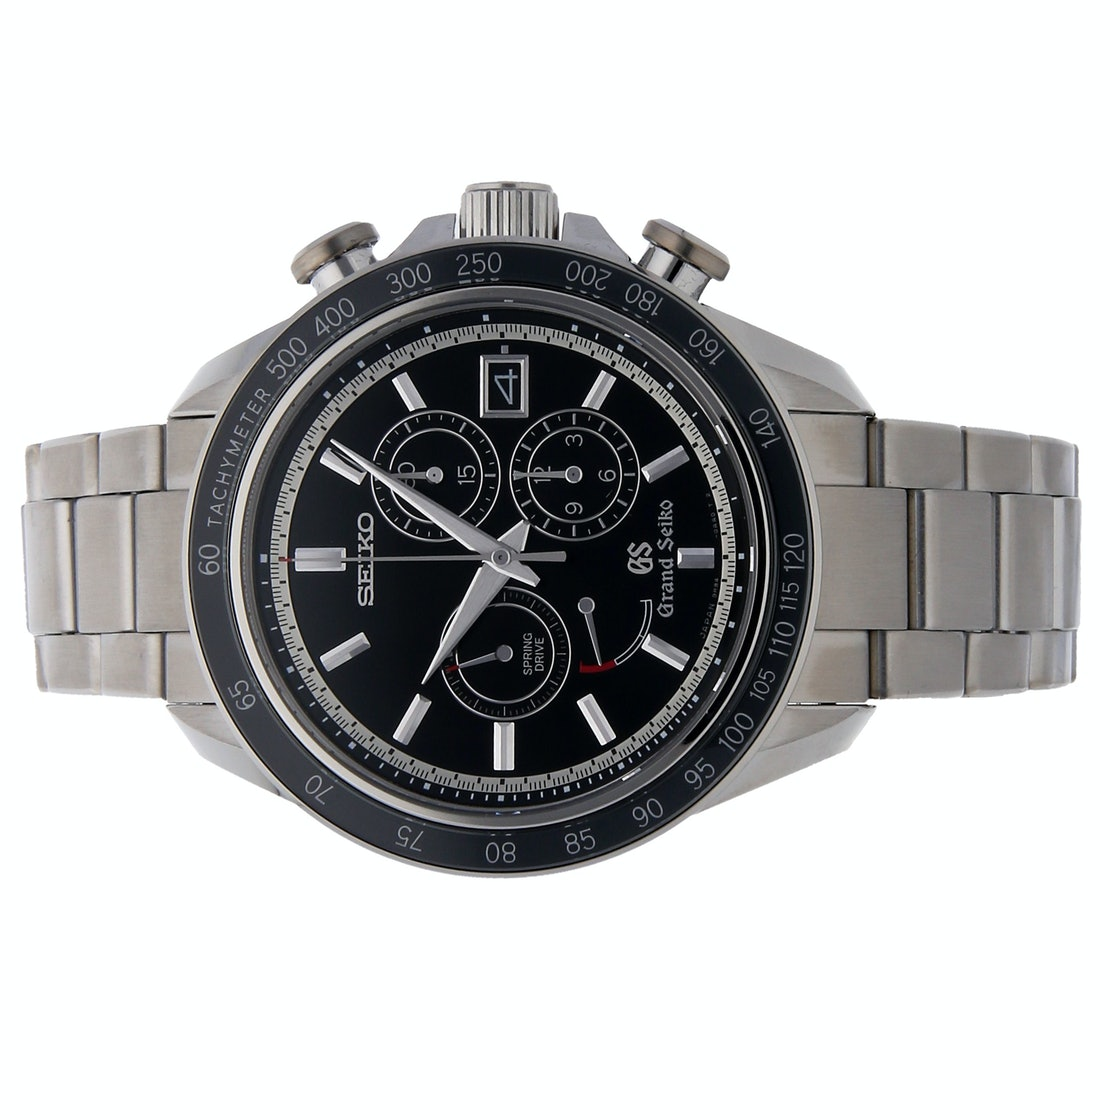 Grand Seiko Chronograph SBGB003